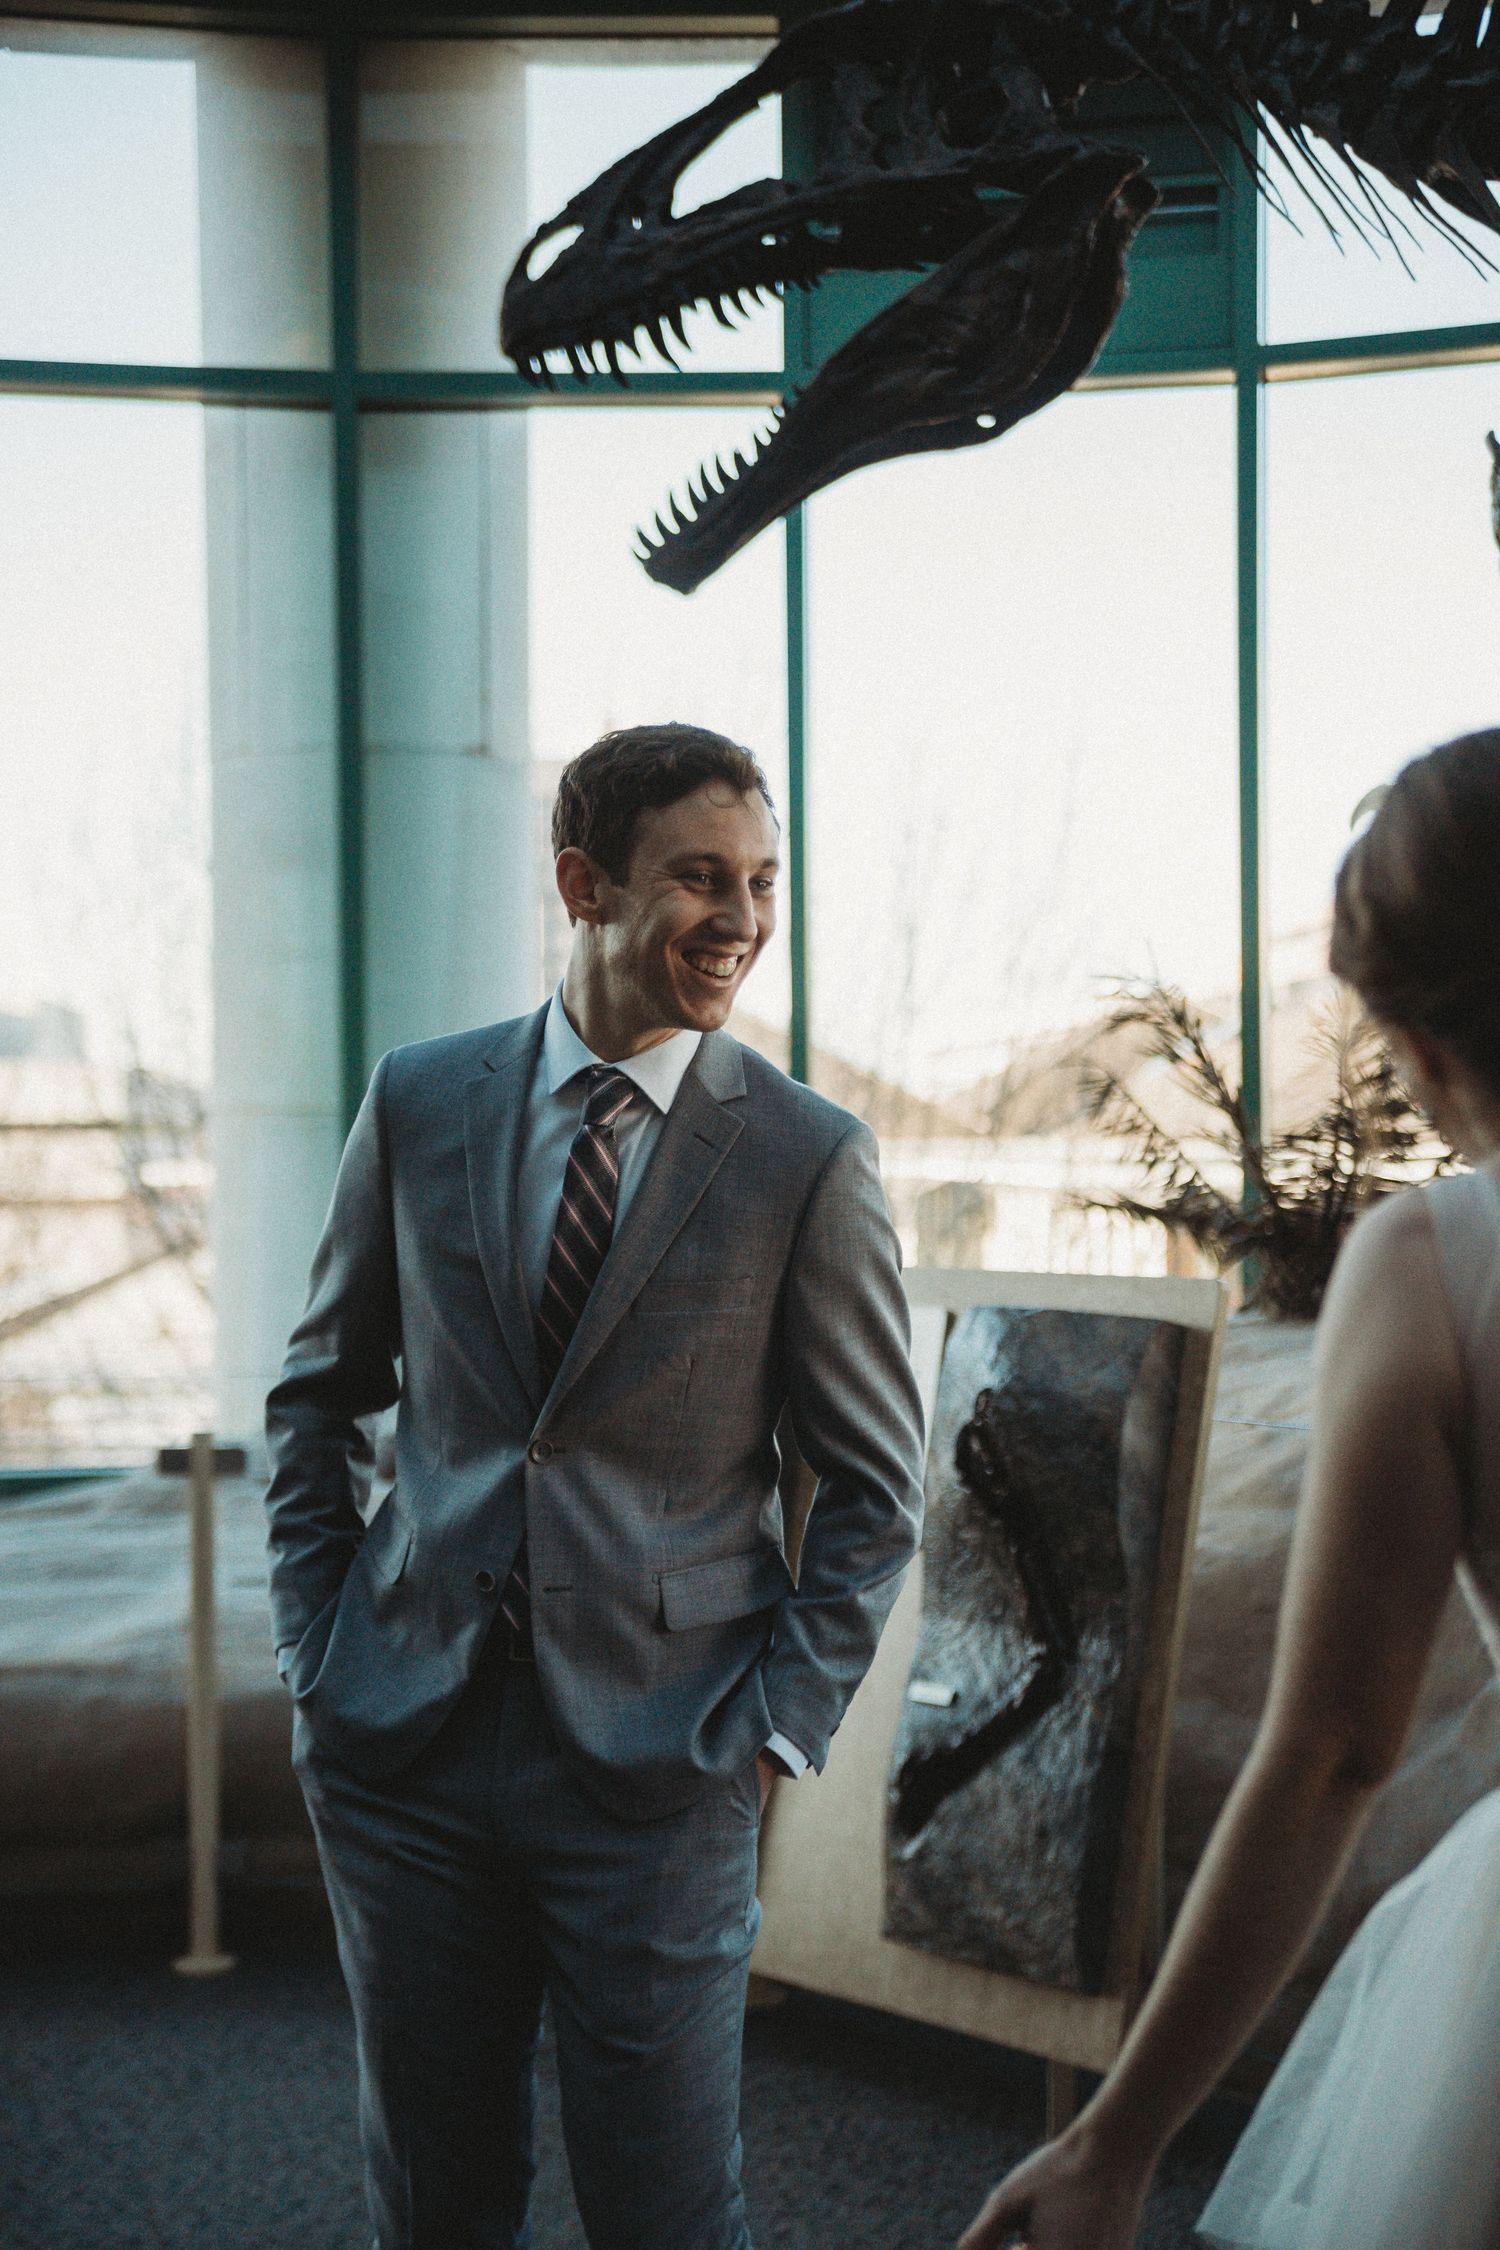 groom smiling while looking at bride in museum